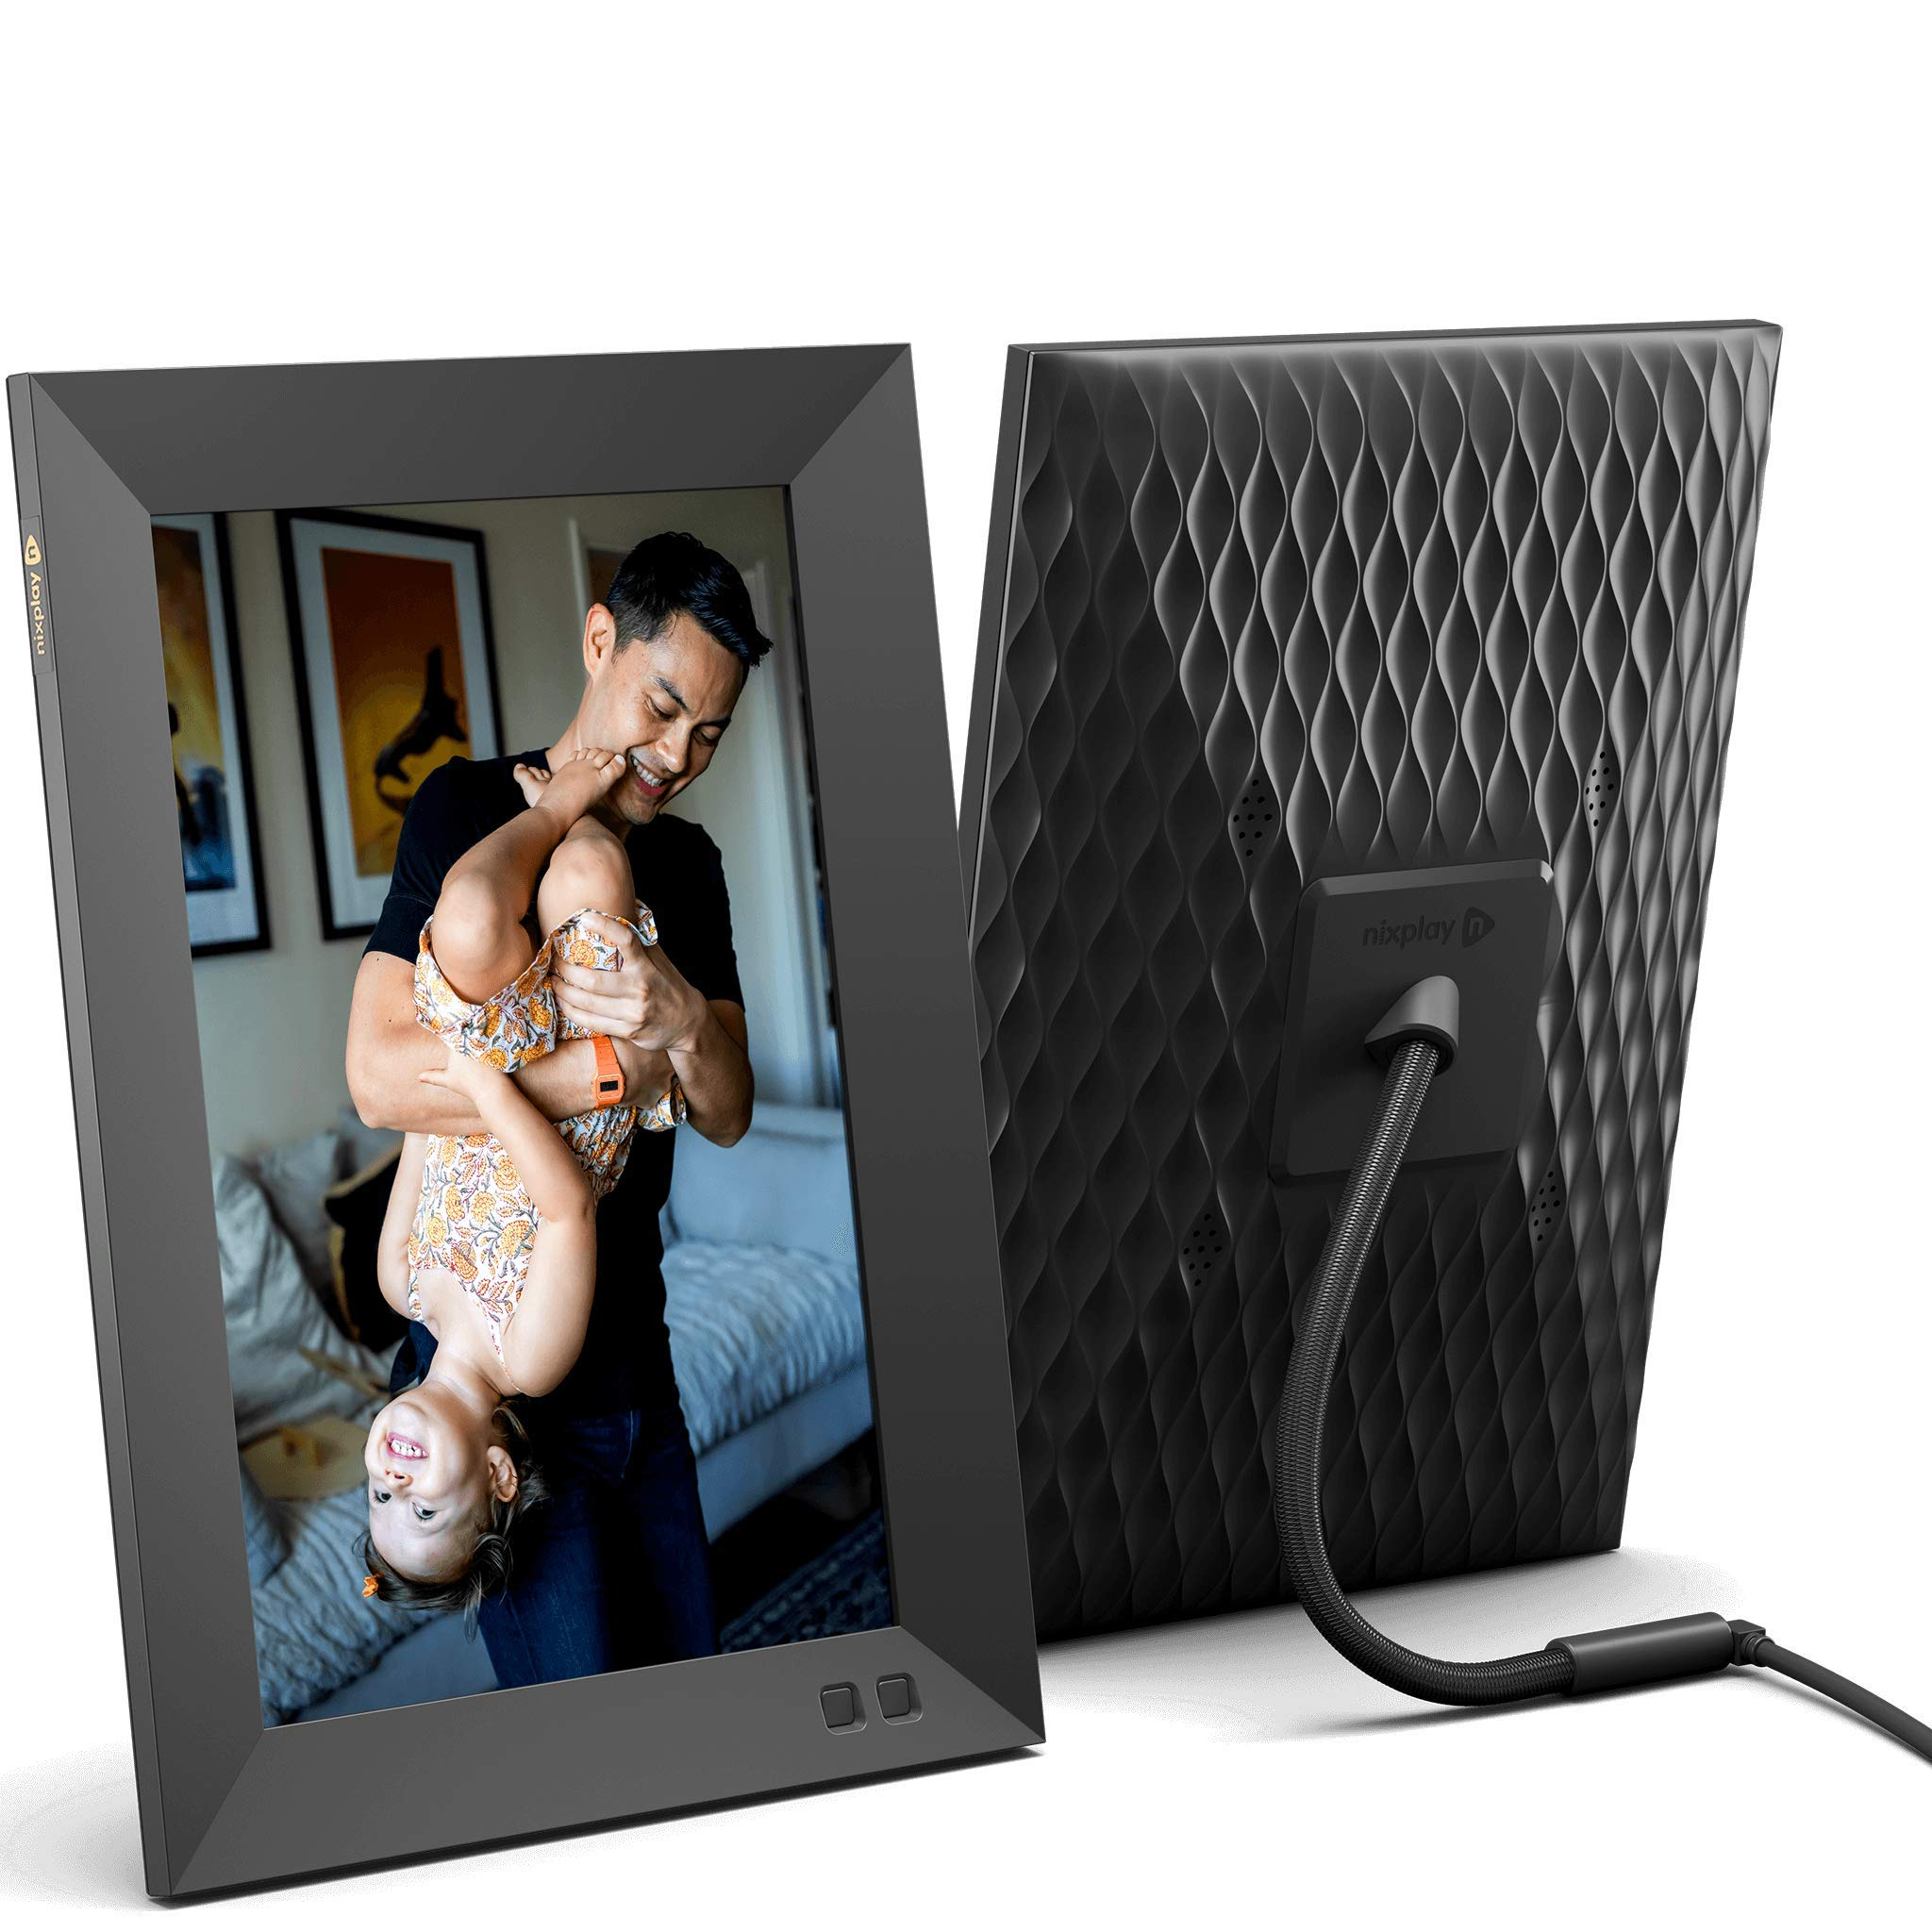 Nixplay Smart Digital Picture Frame 10.1 Inch, Share Video Clips and Photos Instantly via E-Mail or App, Black